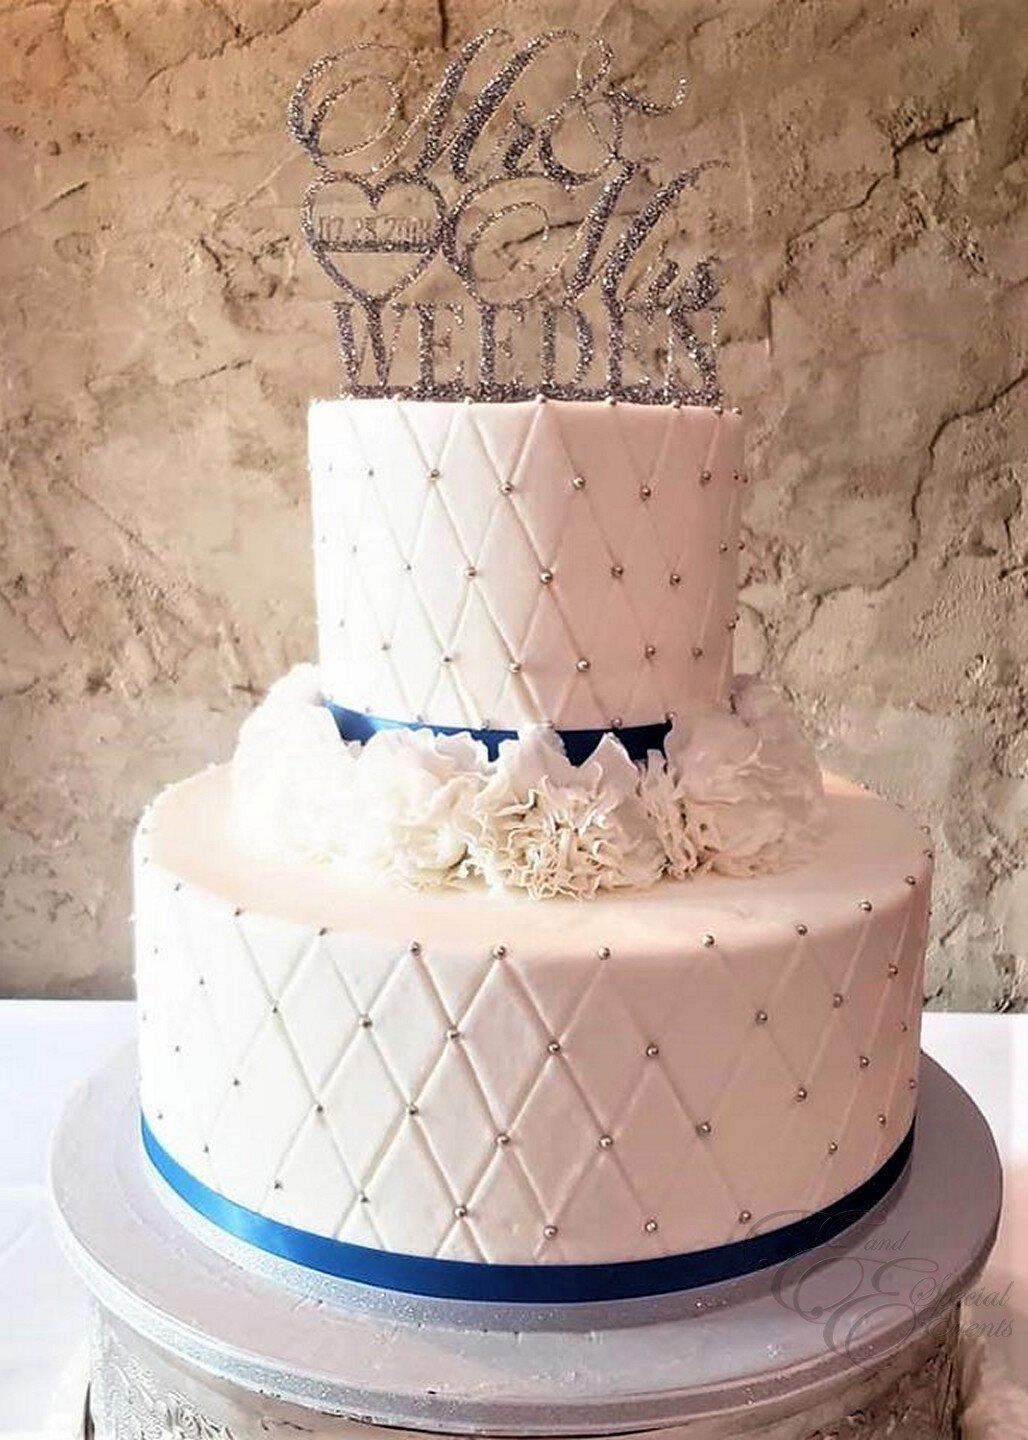 quilt pattern with silver pearls wedding cake.jpg